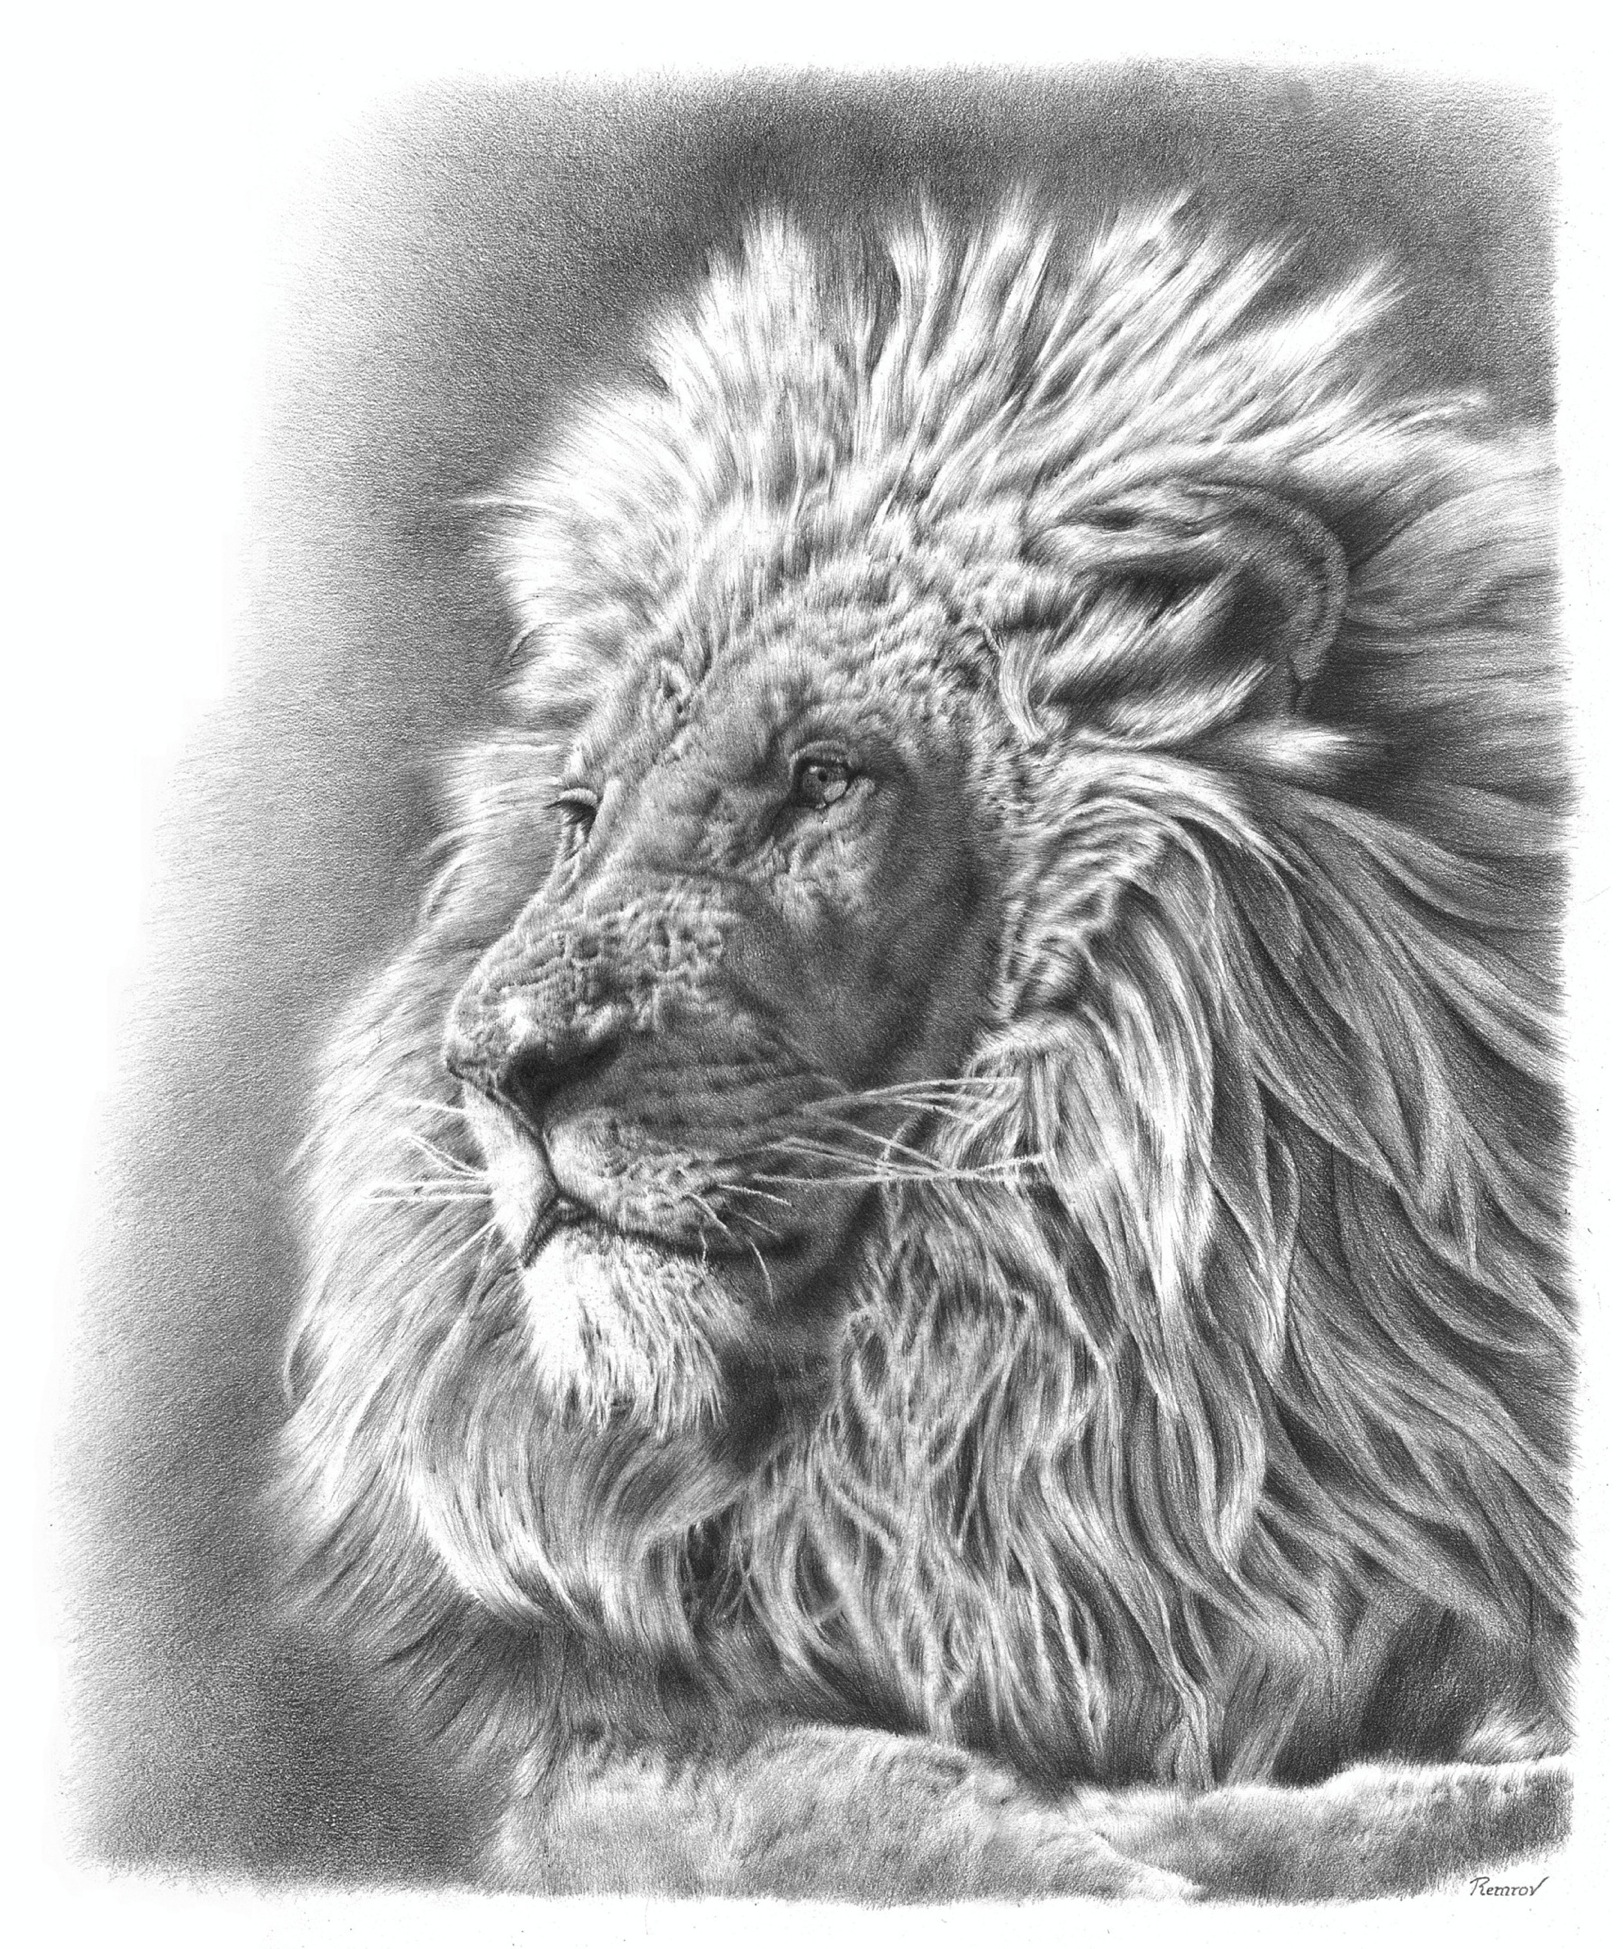 Lion Pencil Drawing by Remrov